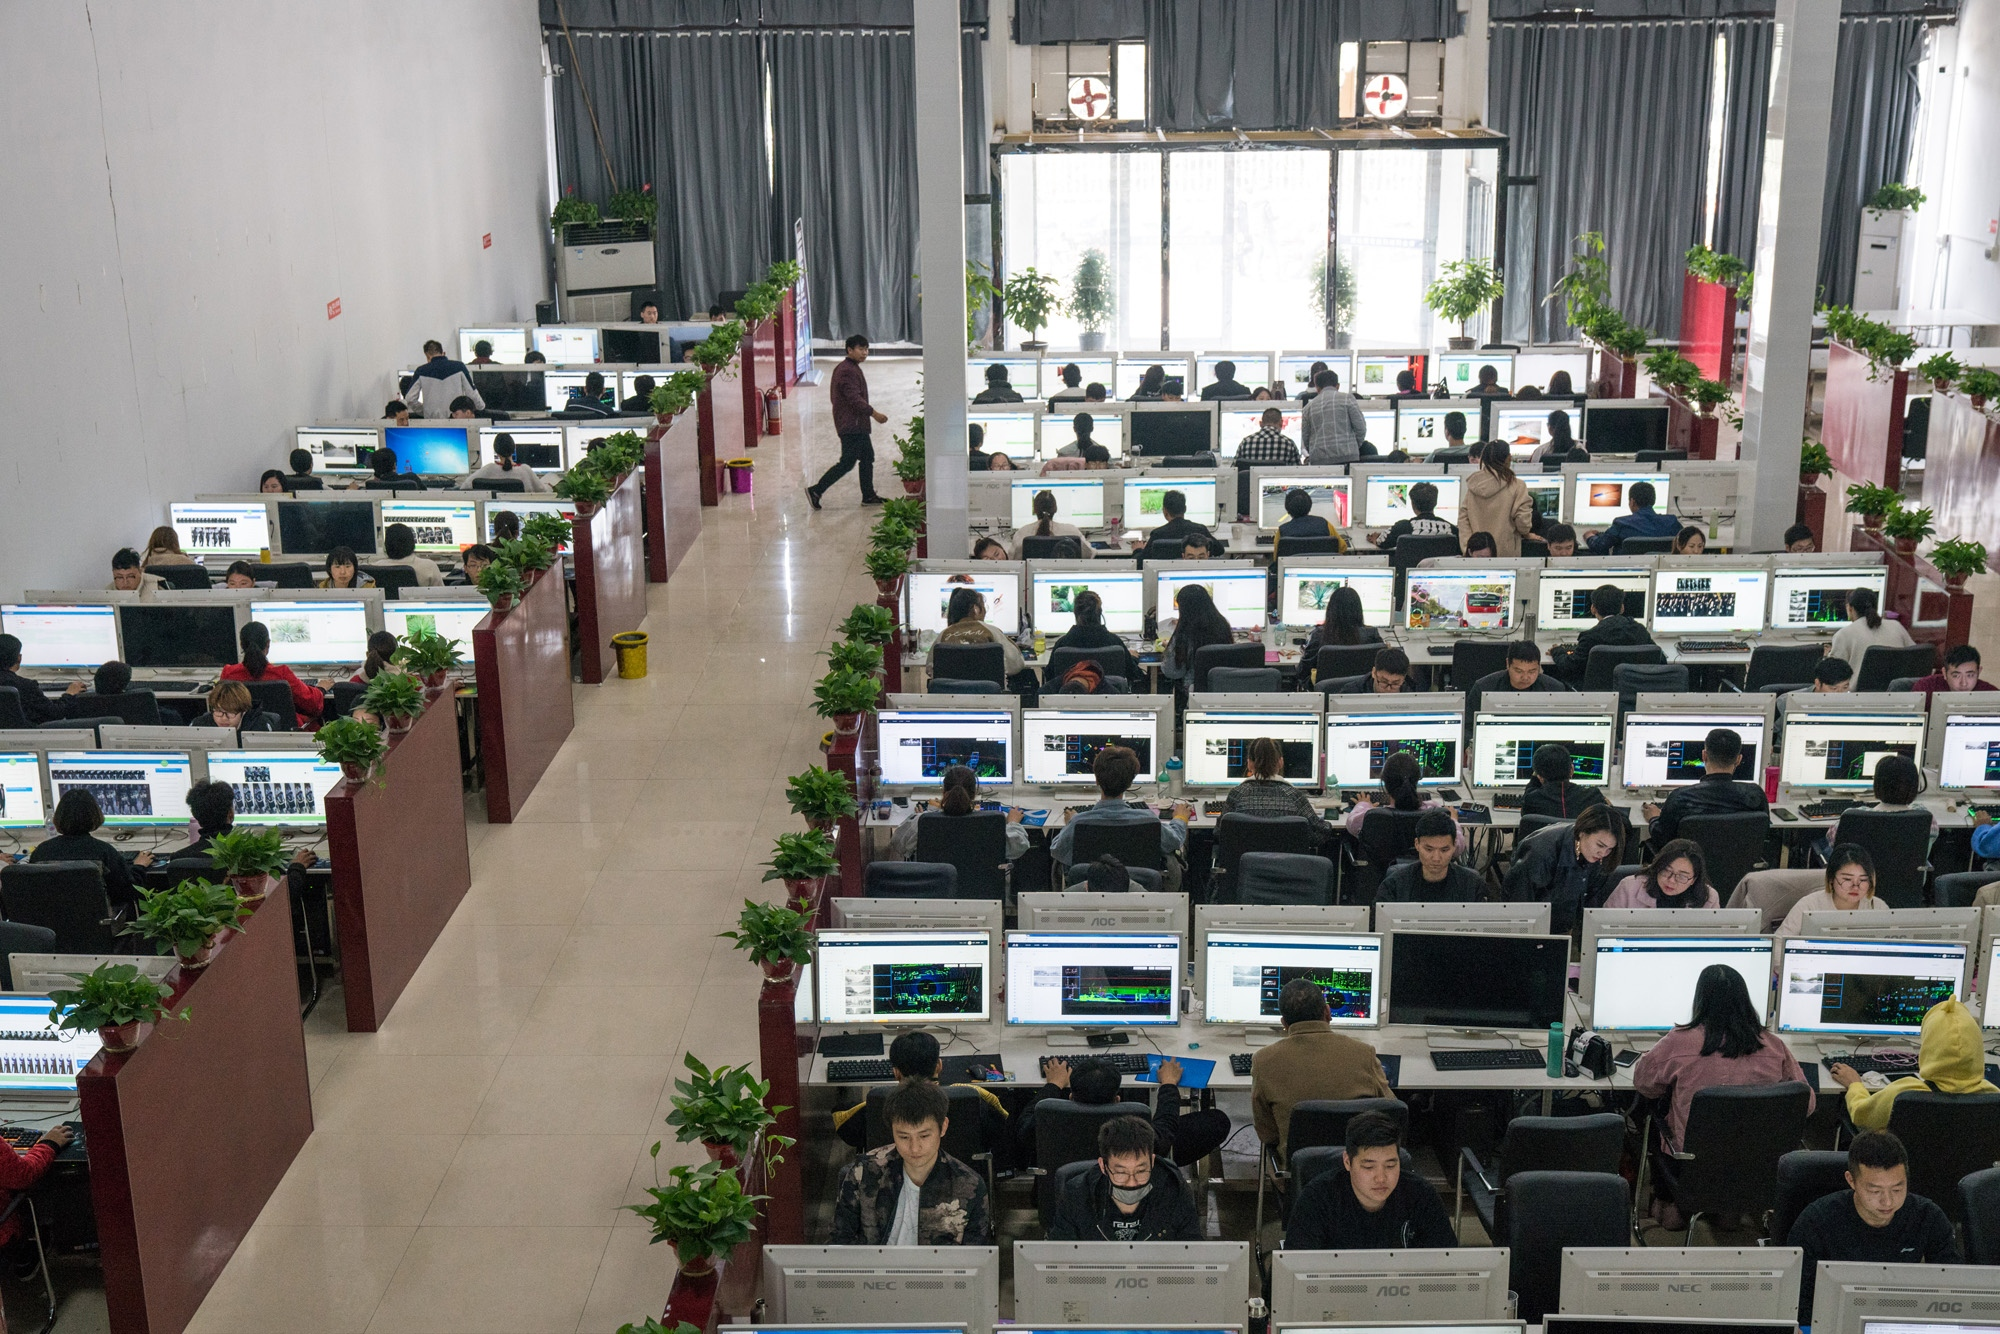 Workers at the headquarters of Ruijin Technology Company in Jiaxian, in central China's Henan Province. They identify objects in images to help artificial intelligence make sense of the world.